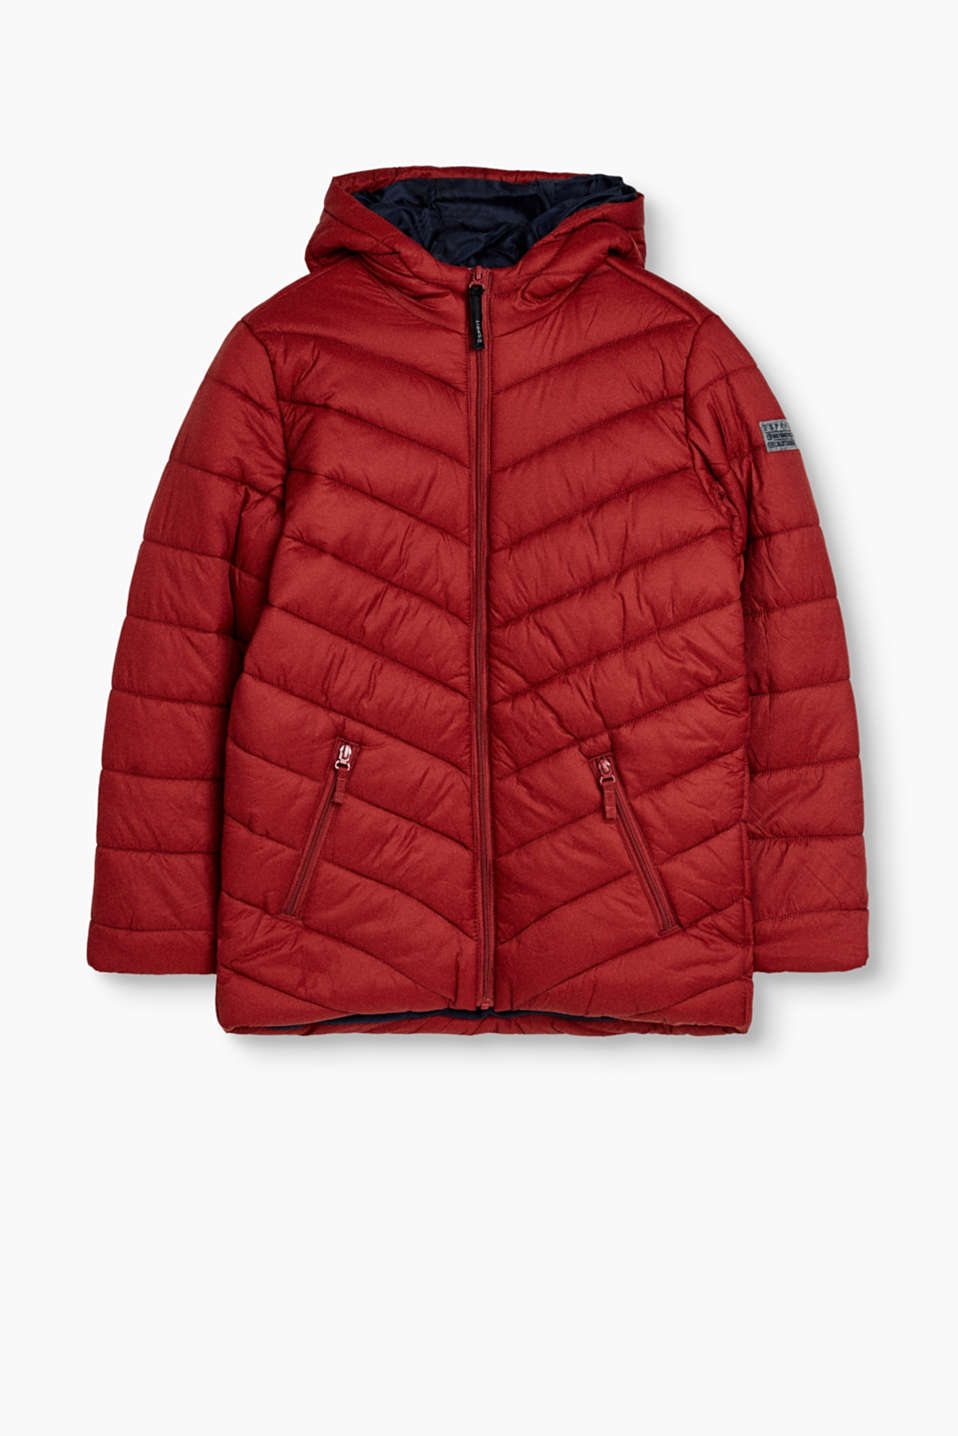 Esprit - Quilted jacket with hood and fleece lining